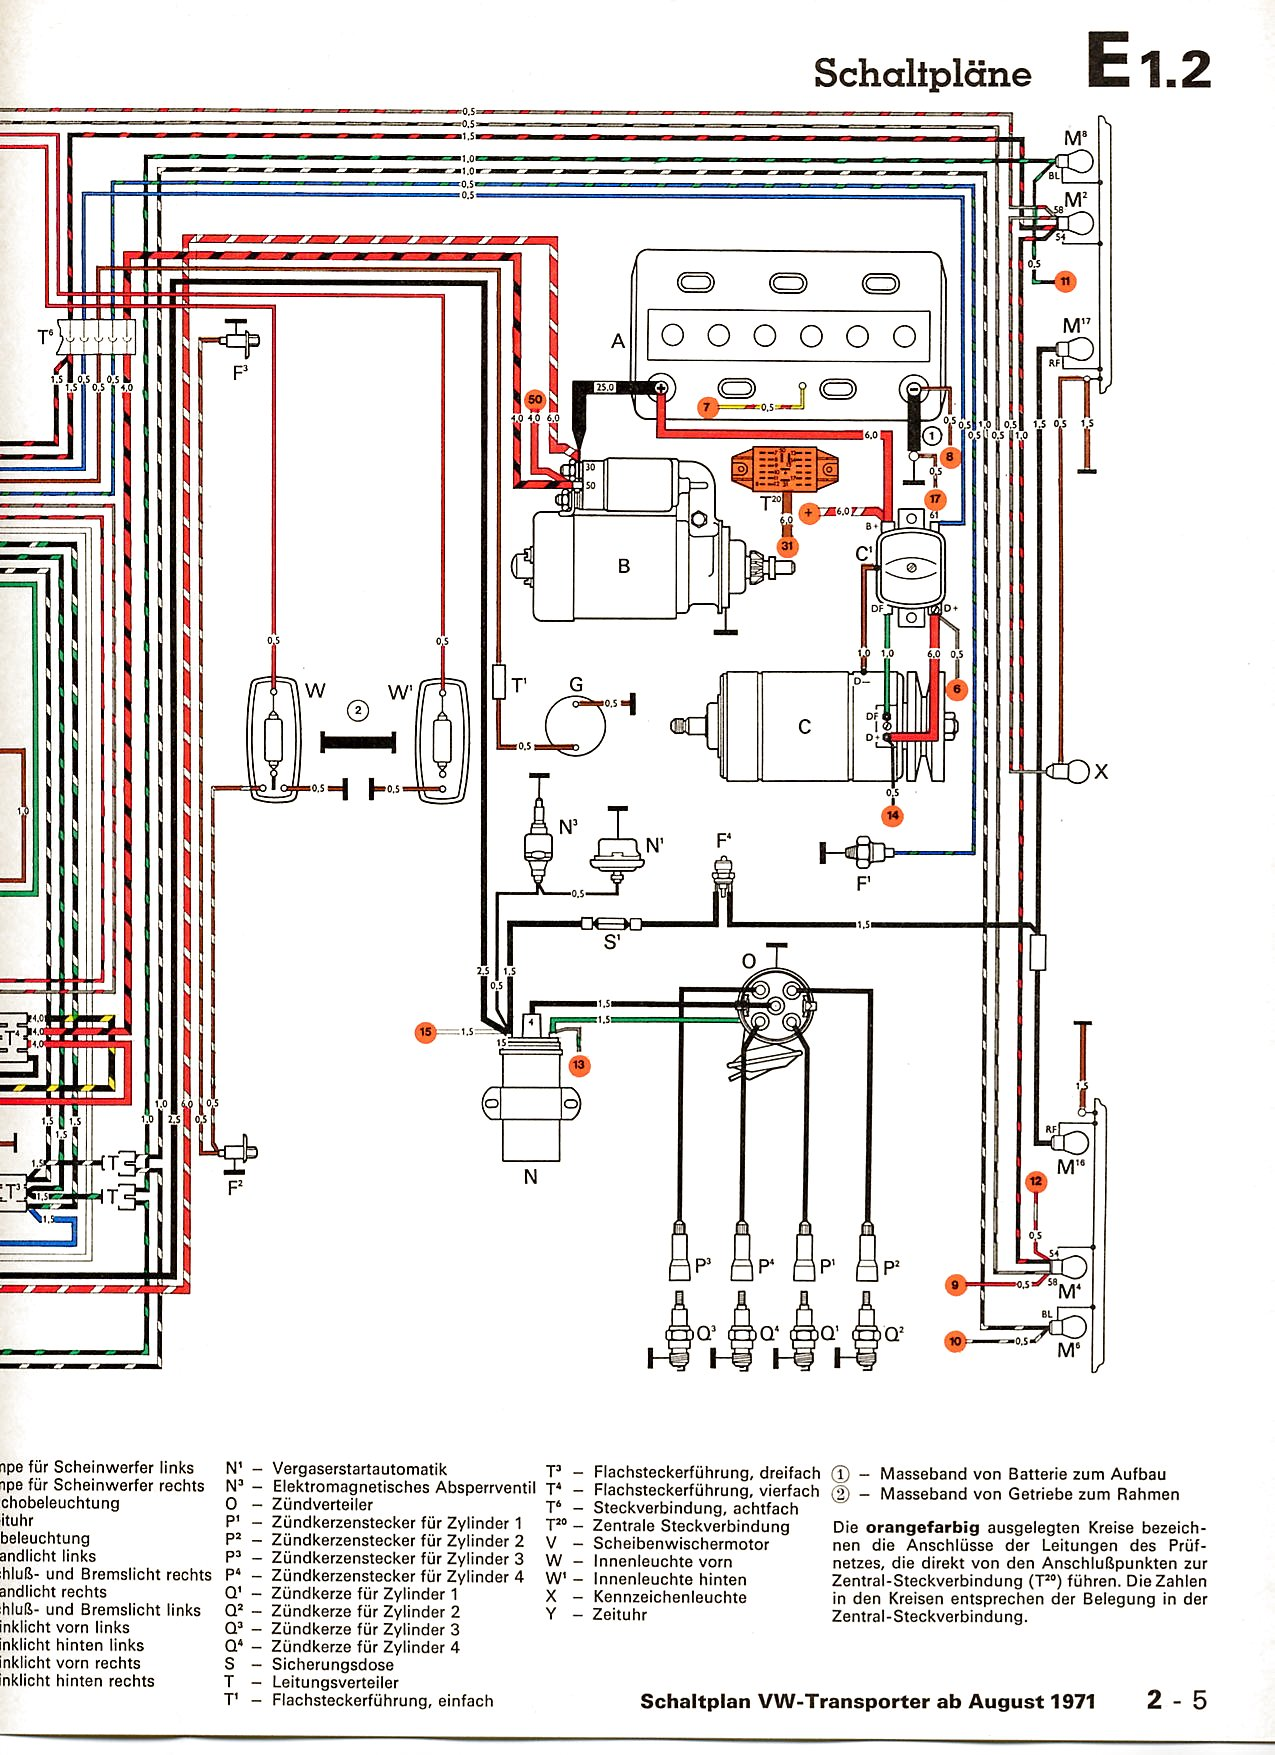 Vw Bus And Other Wiring Diagrams 82 Camaro Engine Bay Diagram Schematic 2